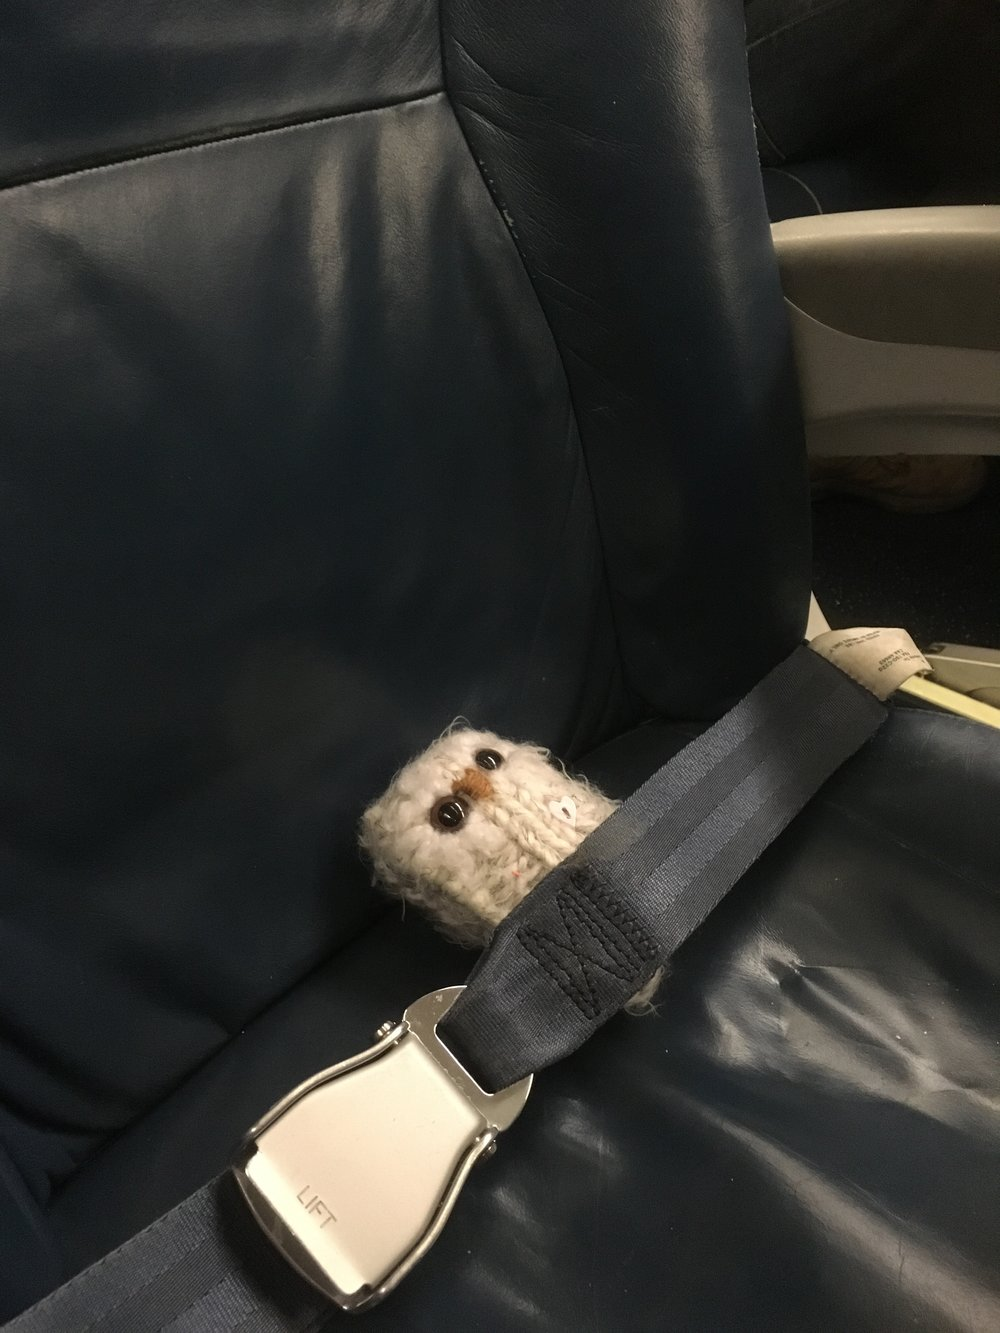 All buckled in and ready for take-off